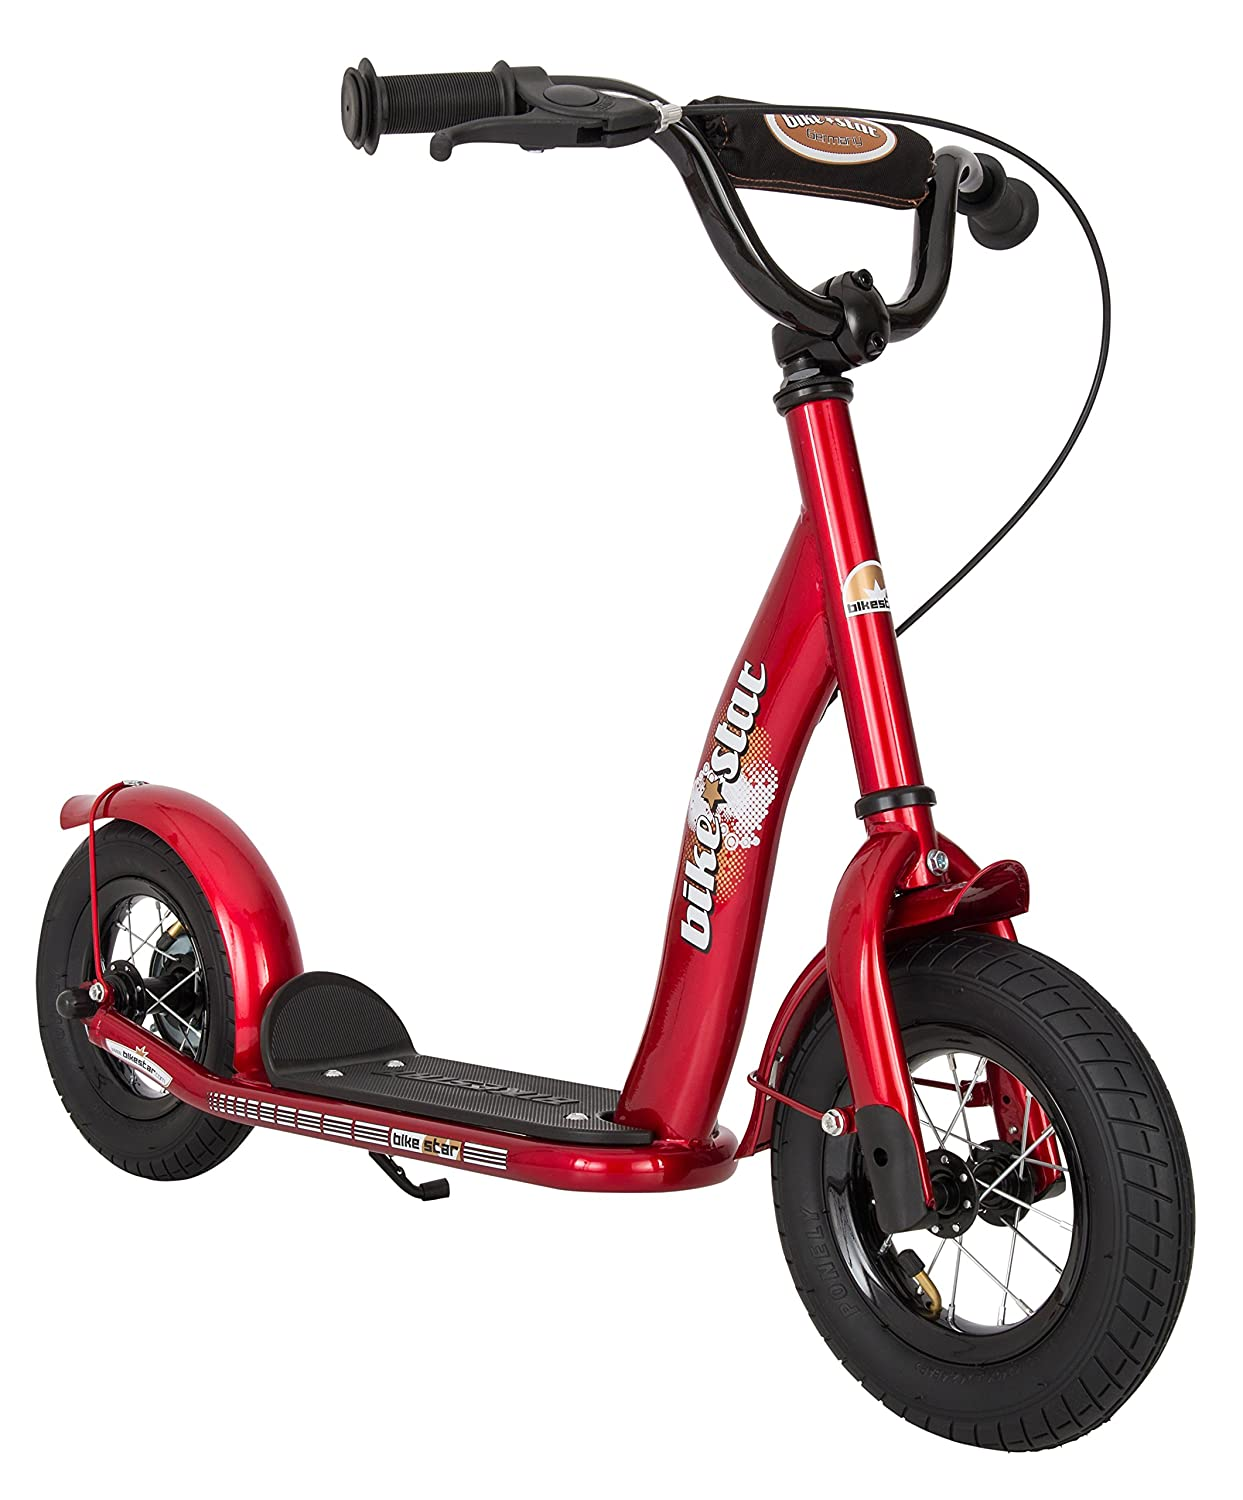 Bikestar 10 inch (25.4 cm) Kids Kick Scooter Red